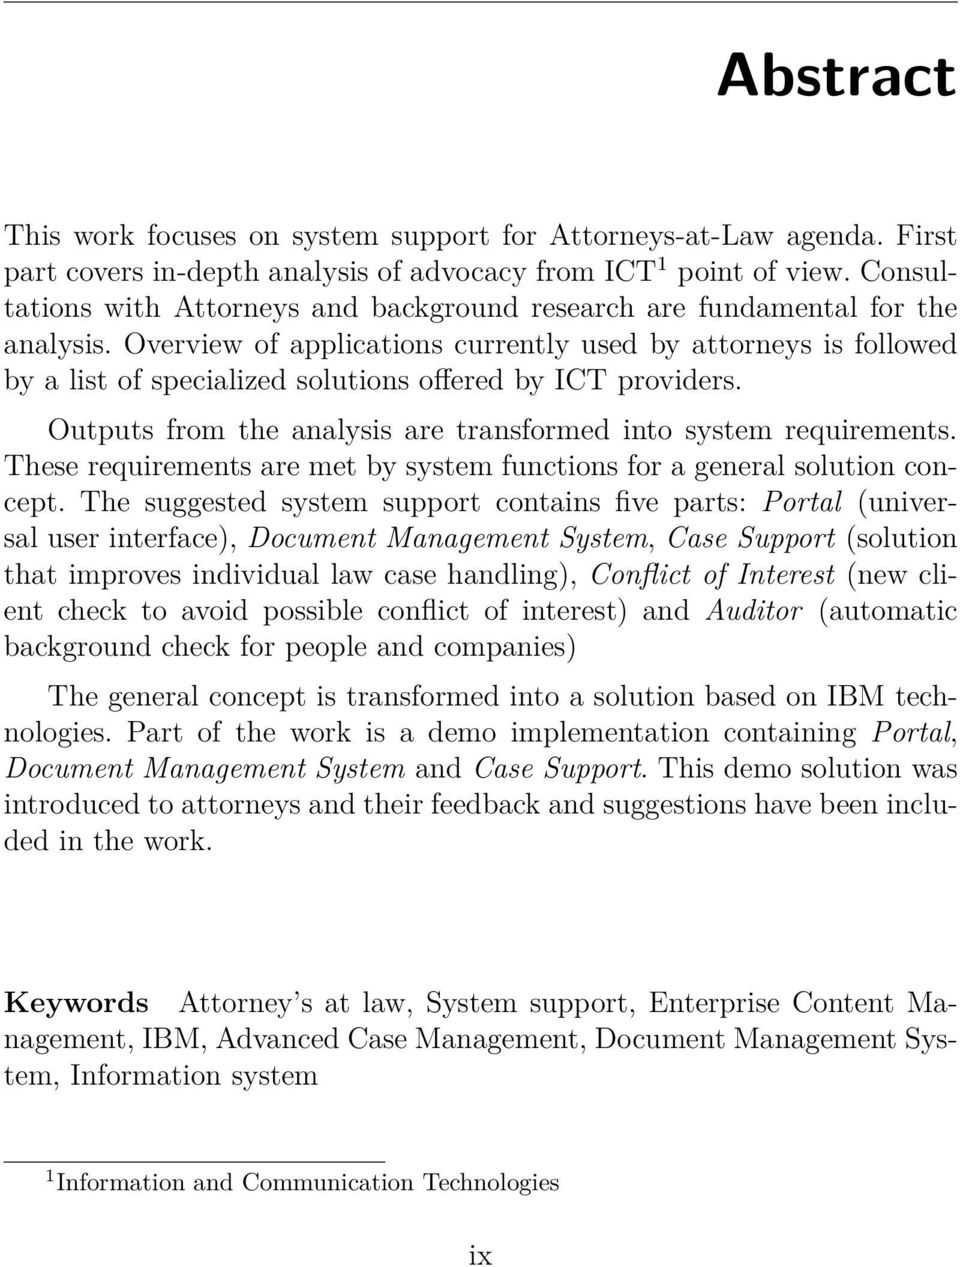 Overview of applications currently used by attorneys is followed by a list of specialized solutions offered by ICT providers. Outputs from the analysis are transformed into system requirements.